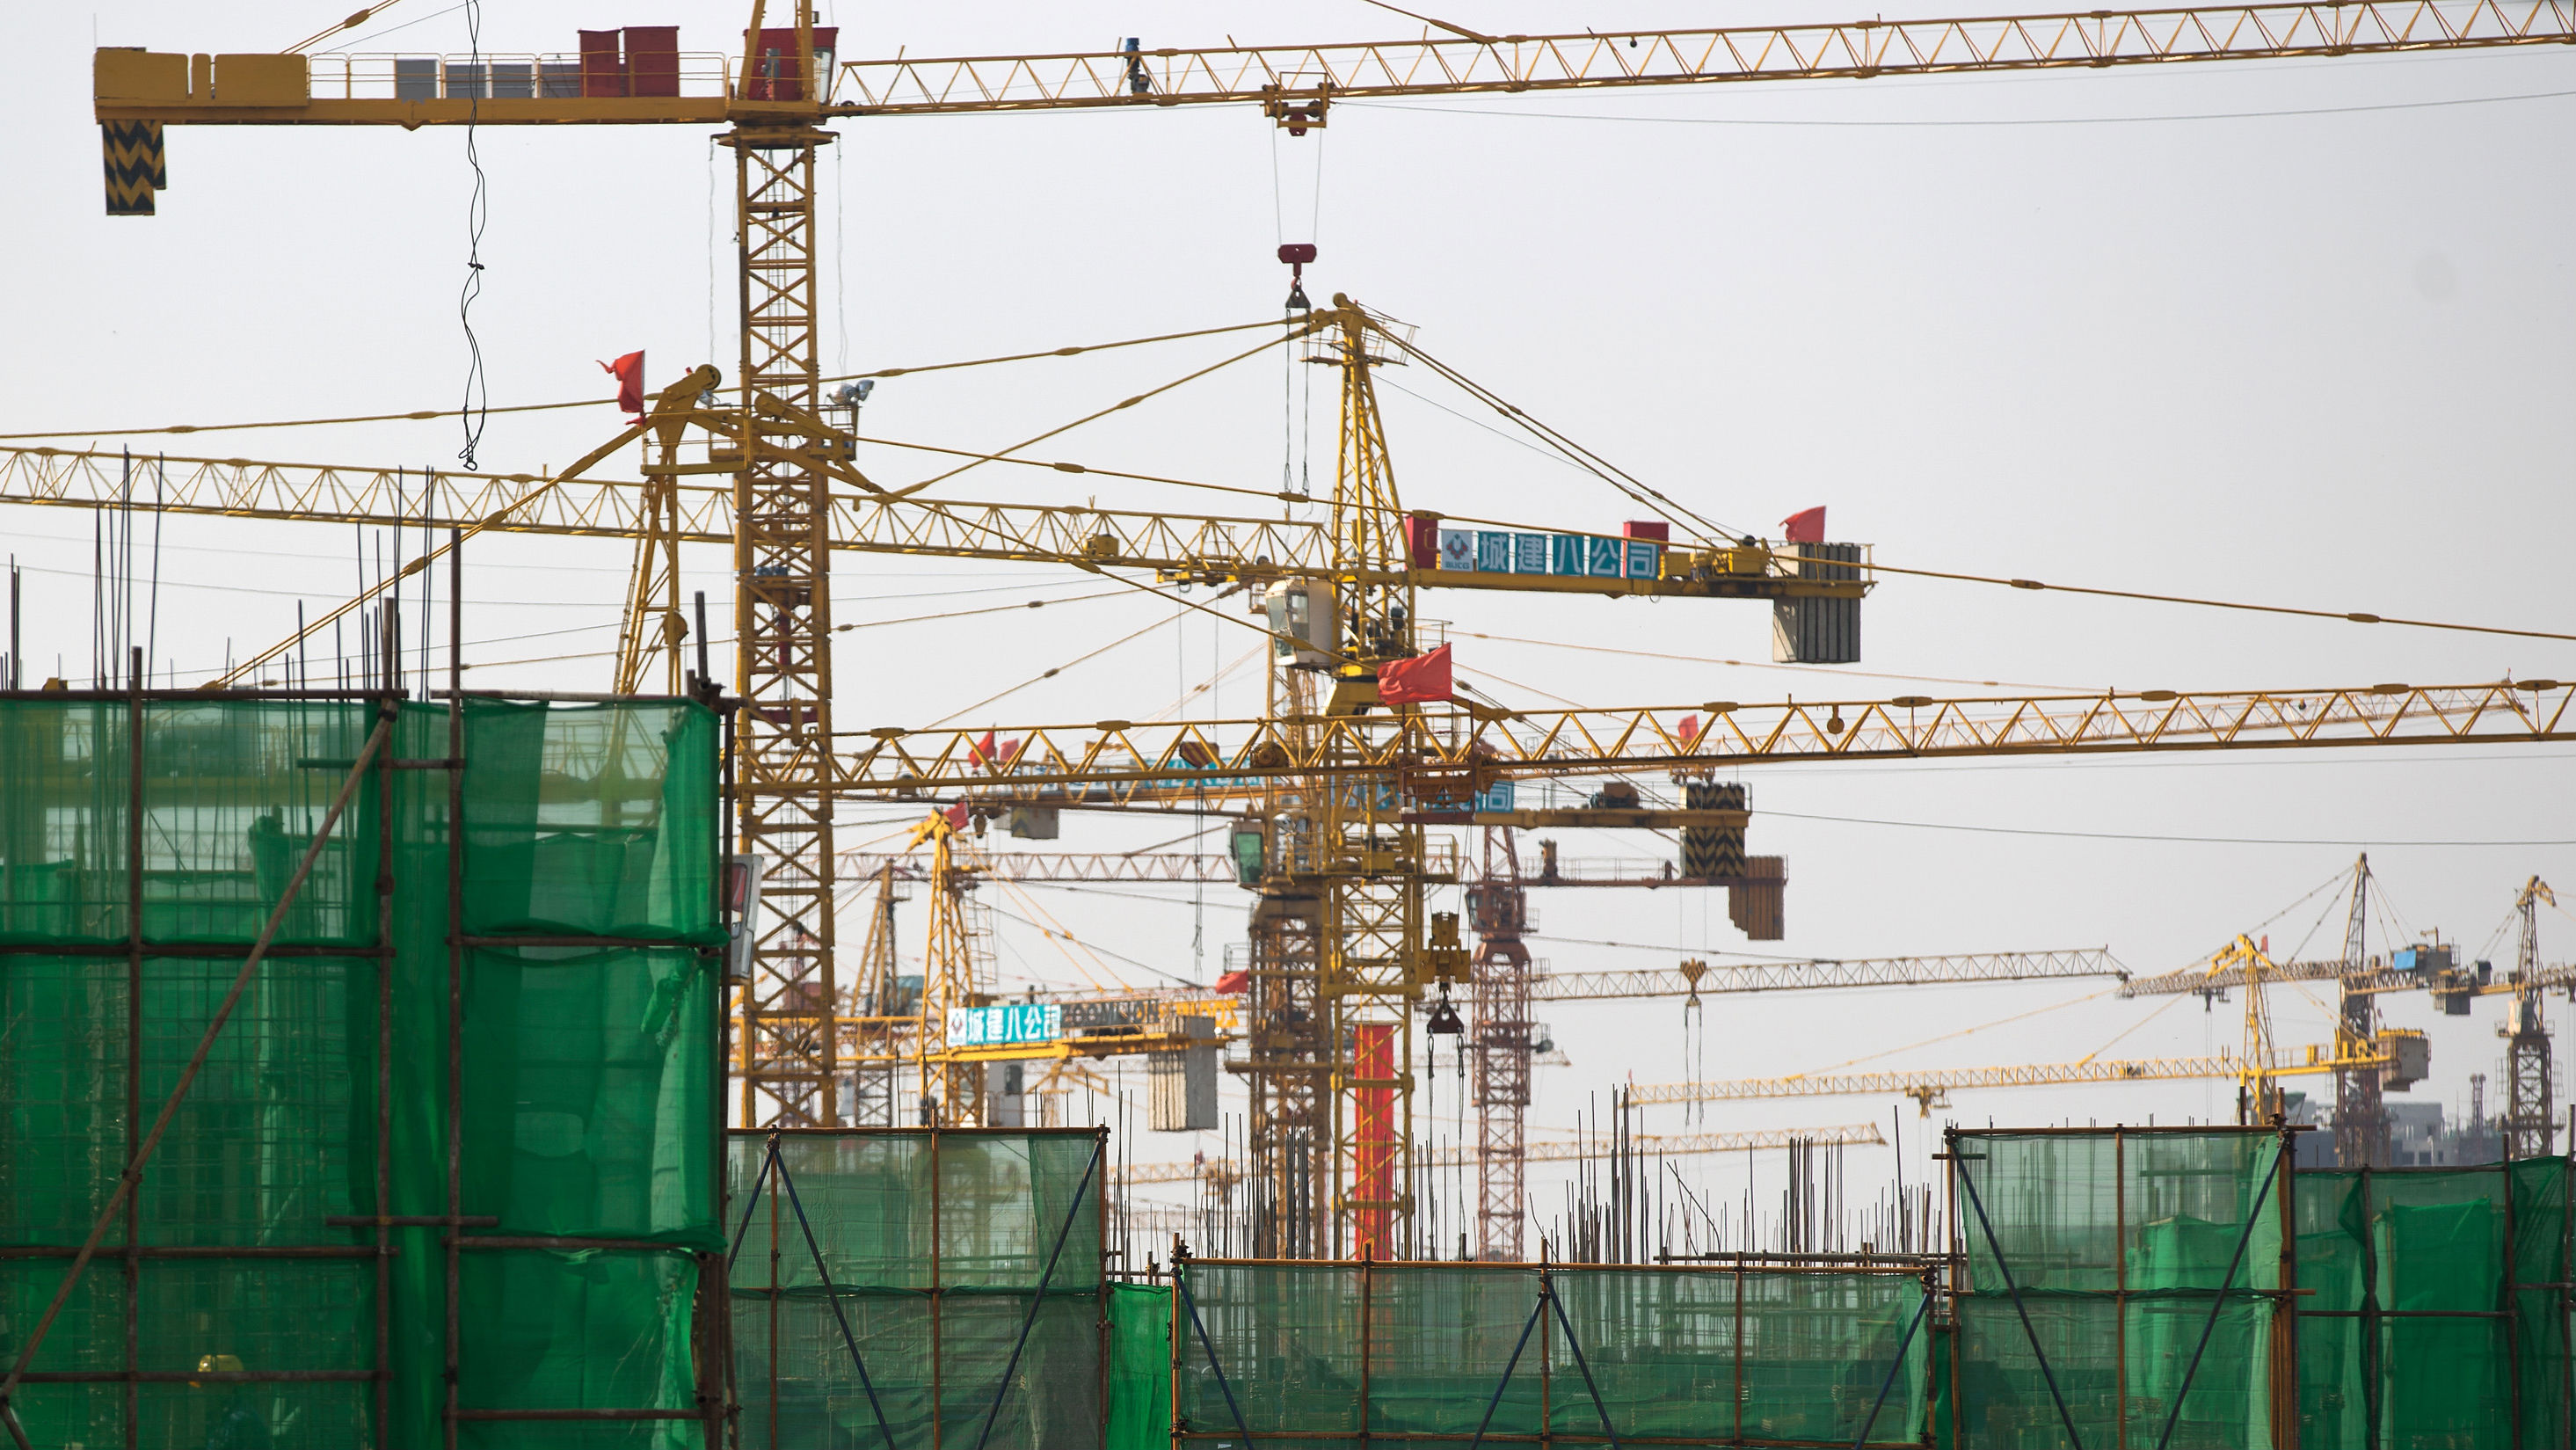 The cranes take to the skies once again